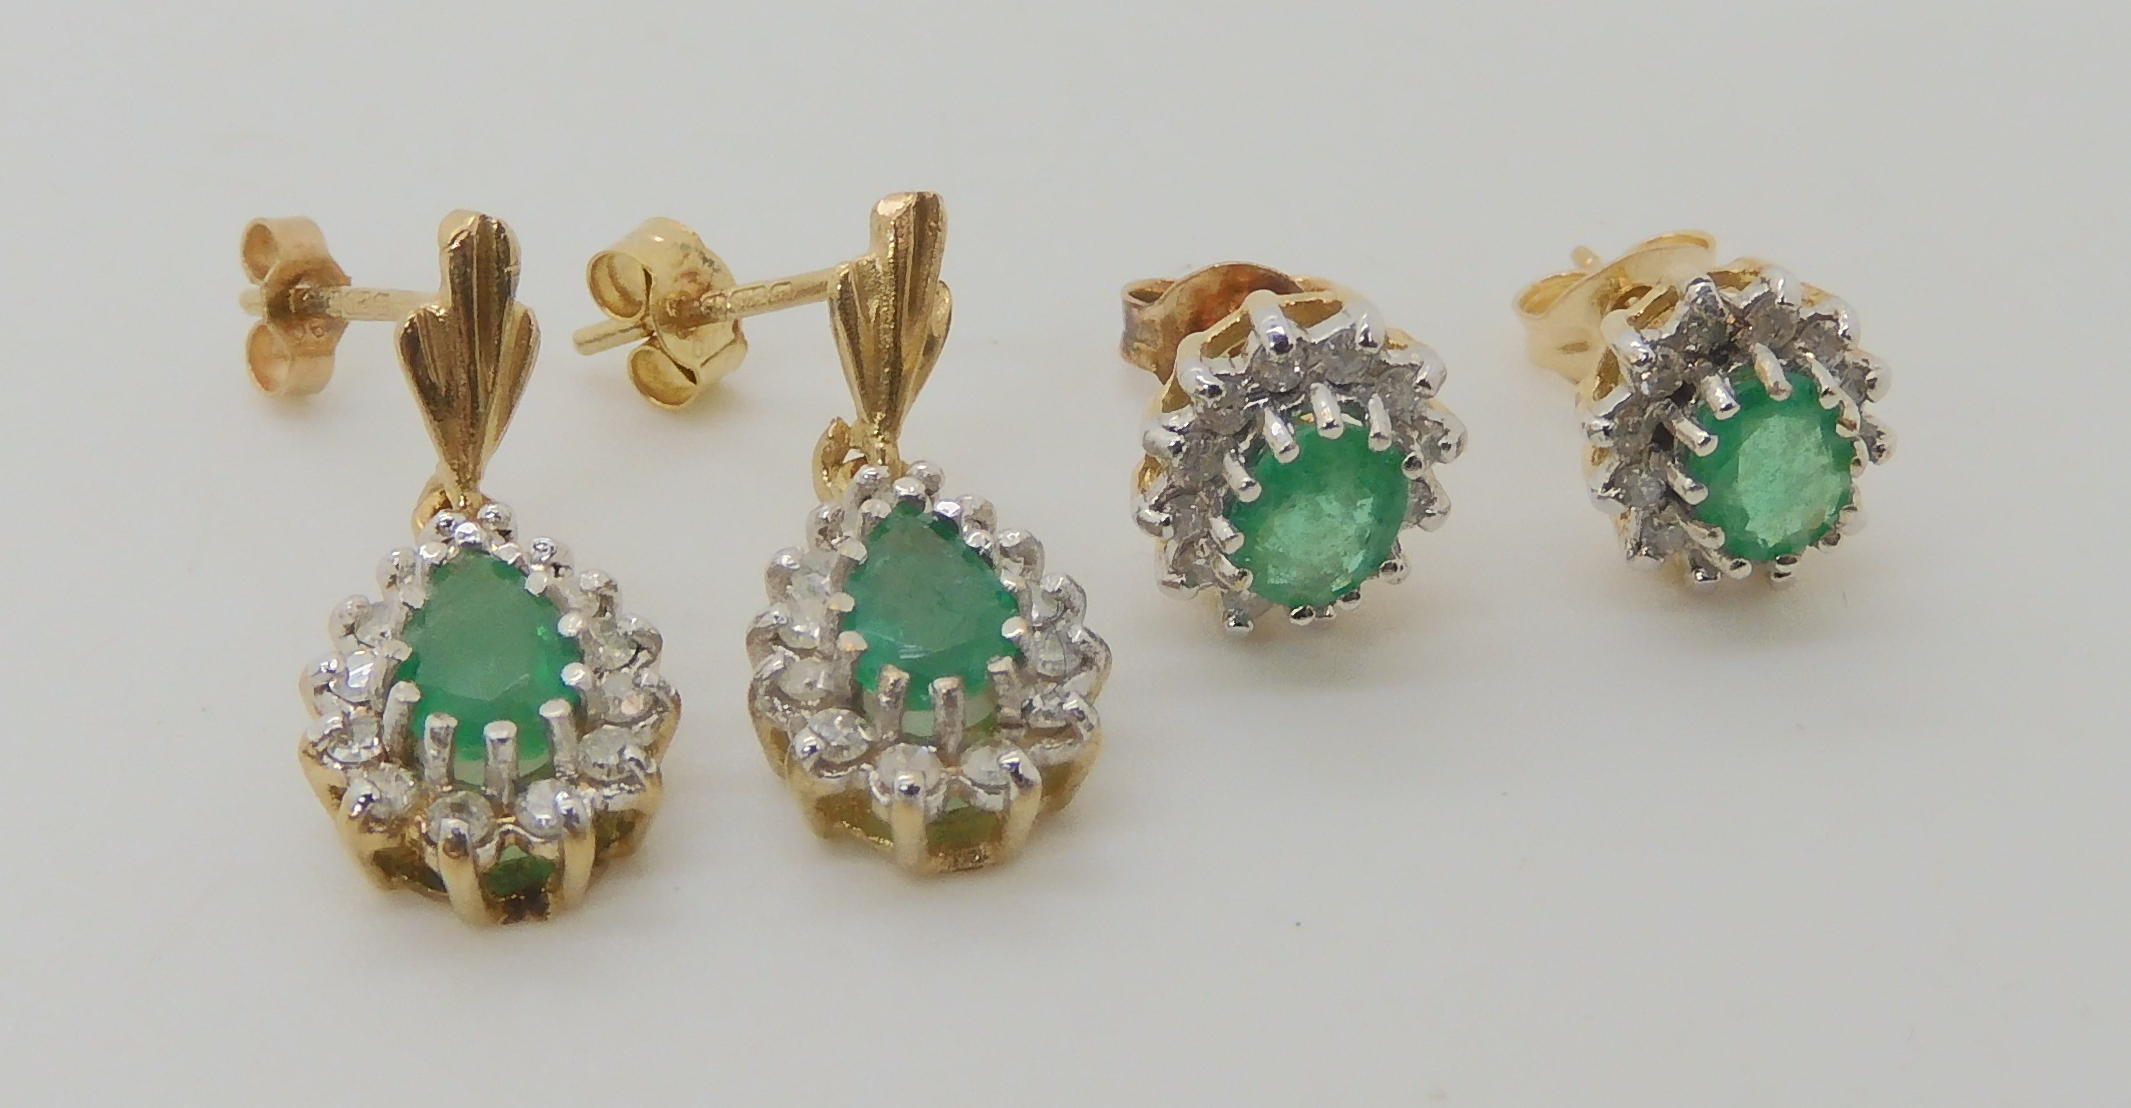 TWO PAIRS OF EMERALD AND DIAMOND EARRINGS pear shaped emerald and diamond drop earrings, set with - Image 4 of 4